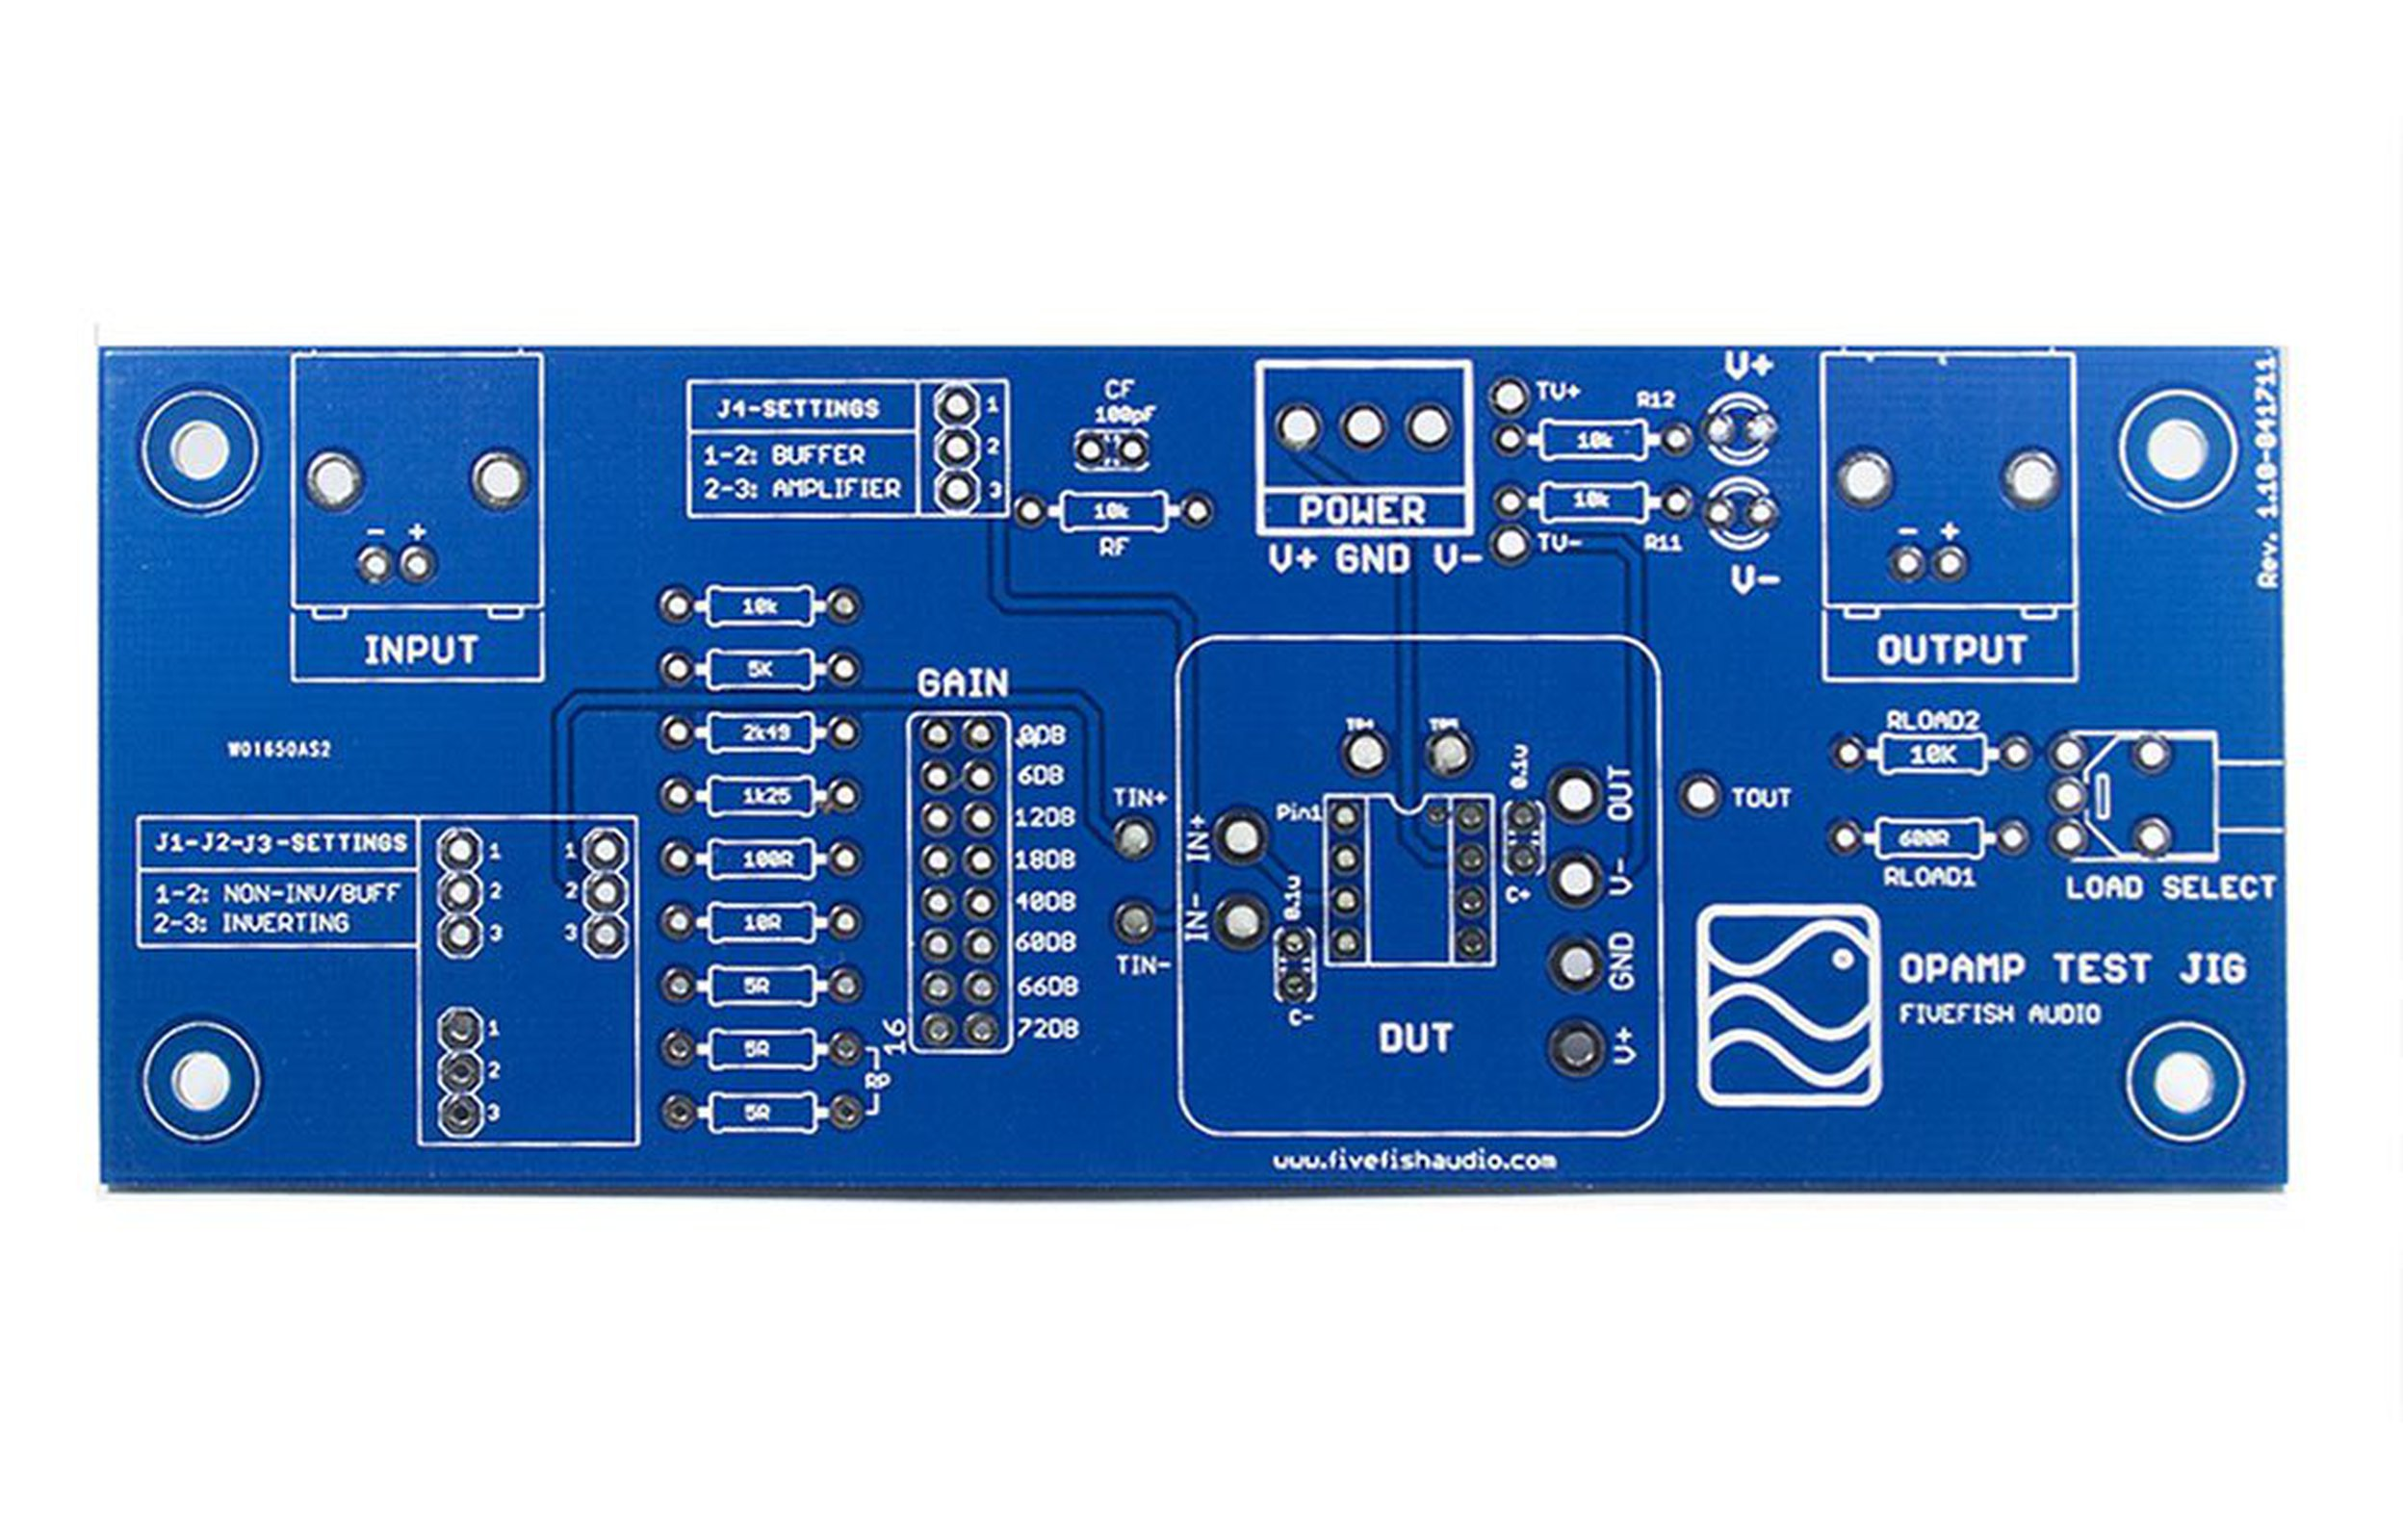 Opamp Test Jig Pcb For Pdip8 Discrete Opamps From Fivefish Audio The Inverter Circuit 4